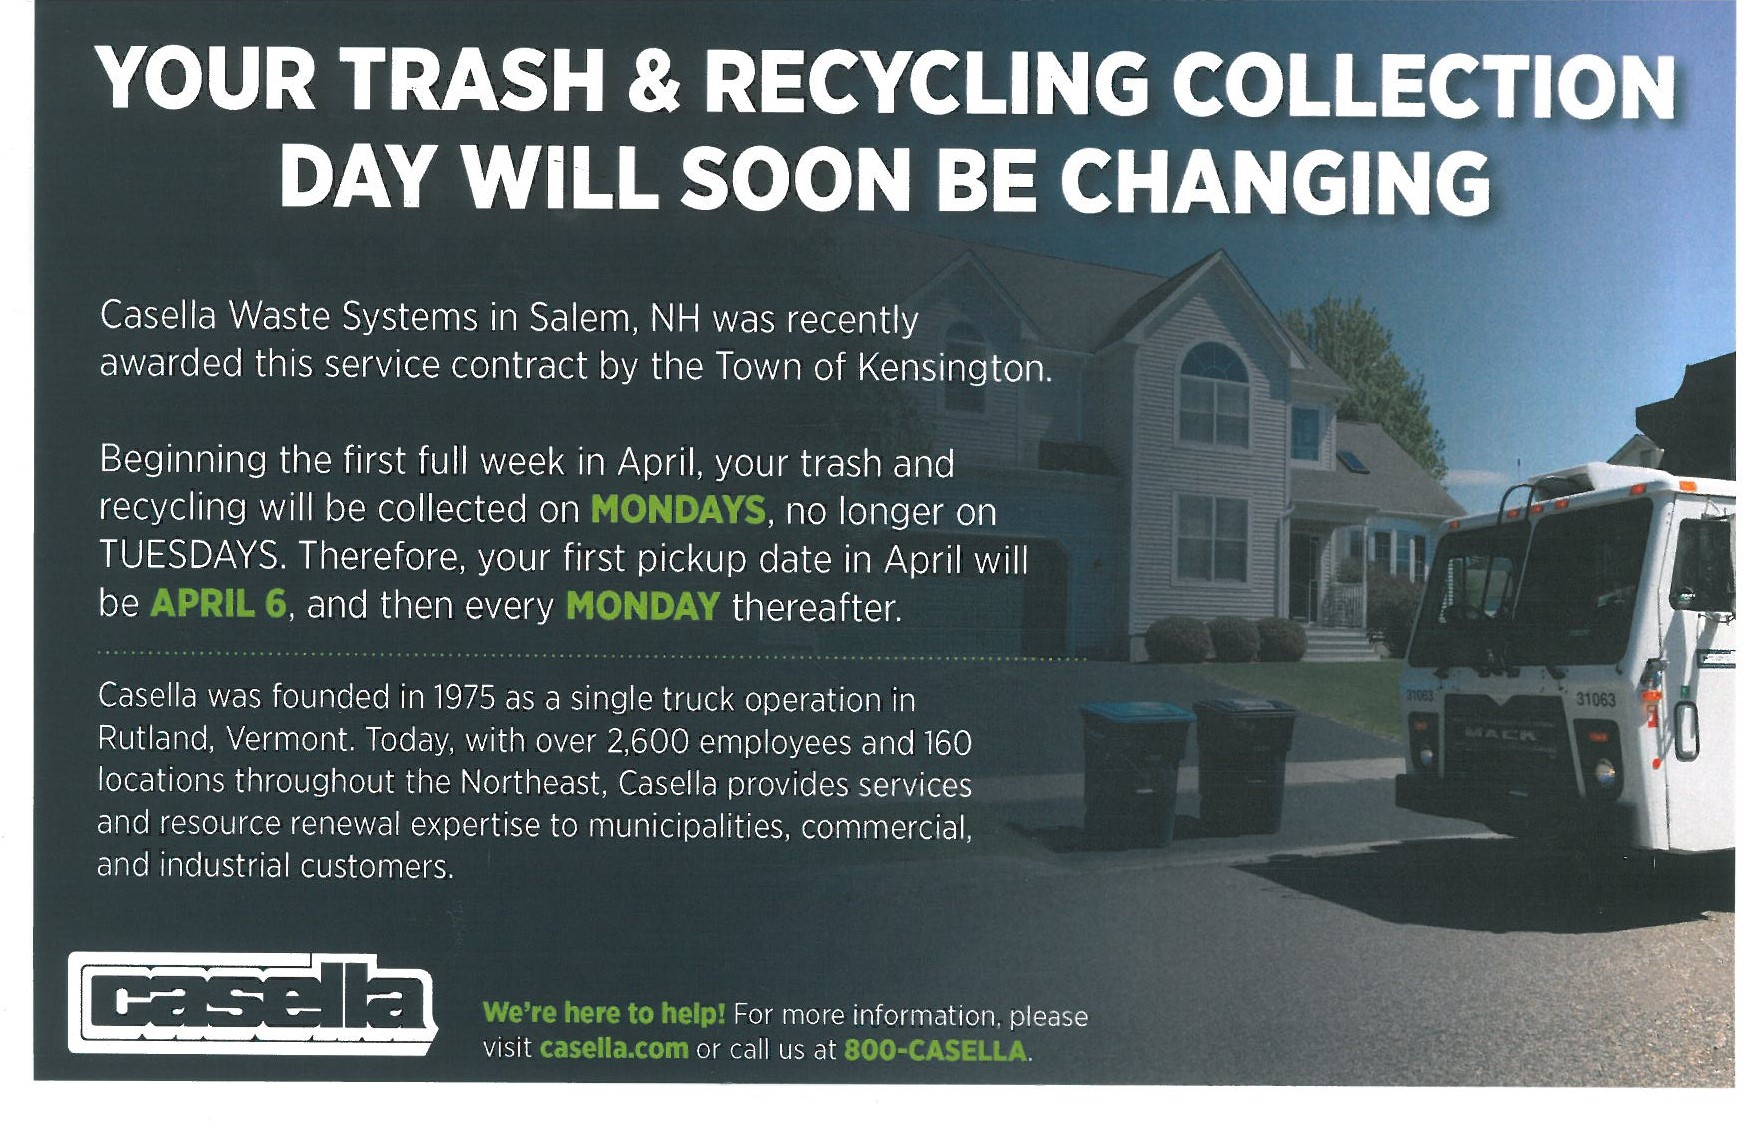 Casella Waste Systems now collecting Trash and Recycling on Mondays- call 1-800-Casella with pick up issues or questions.